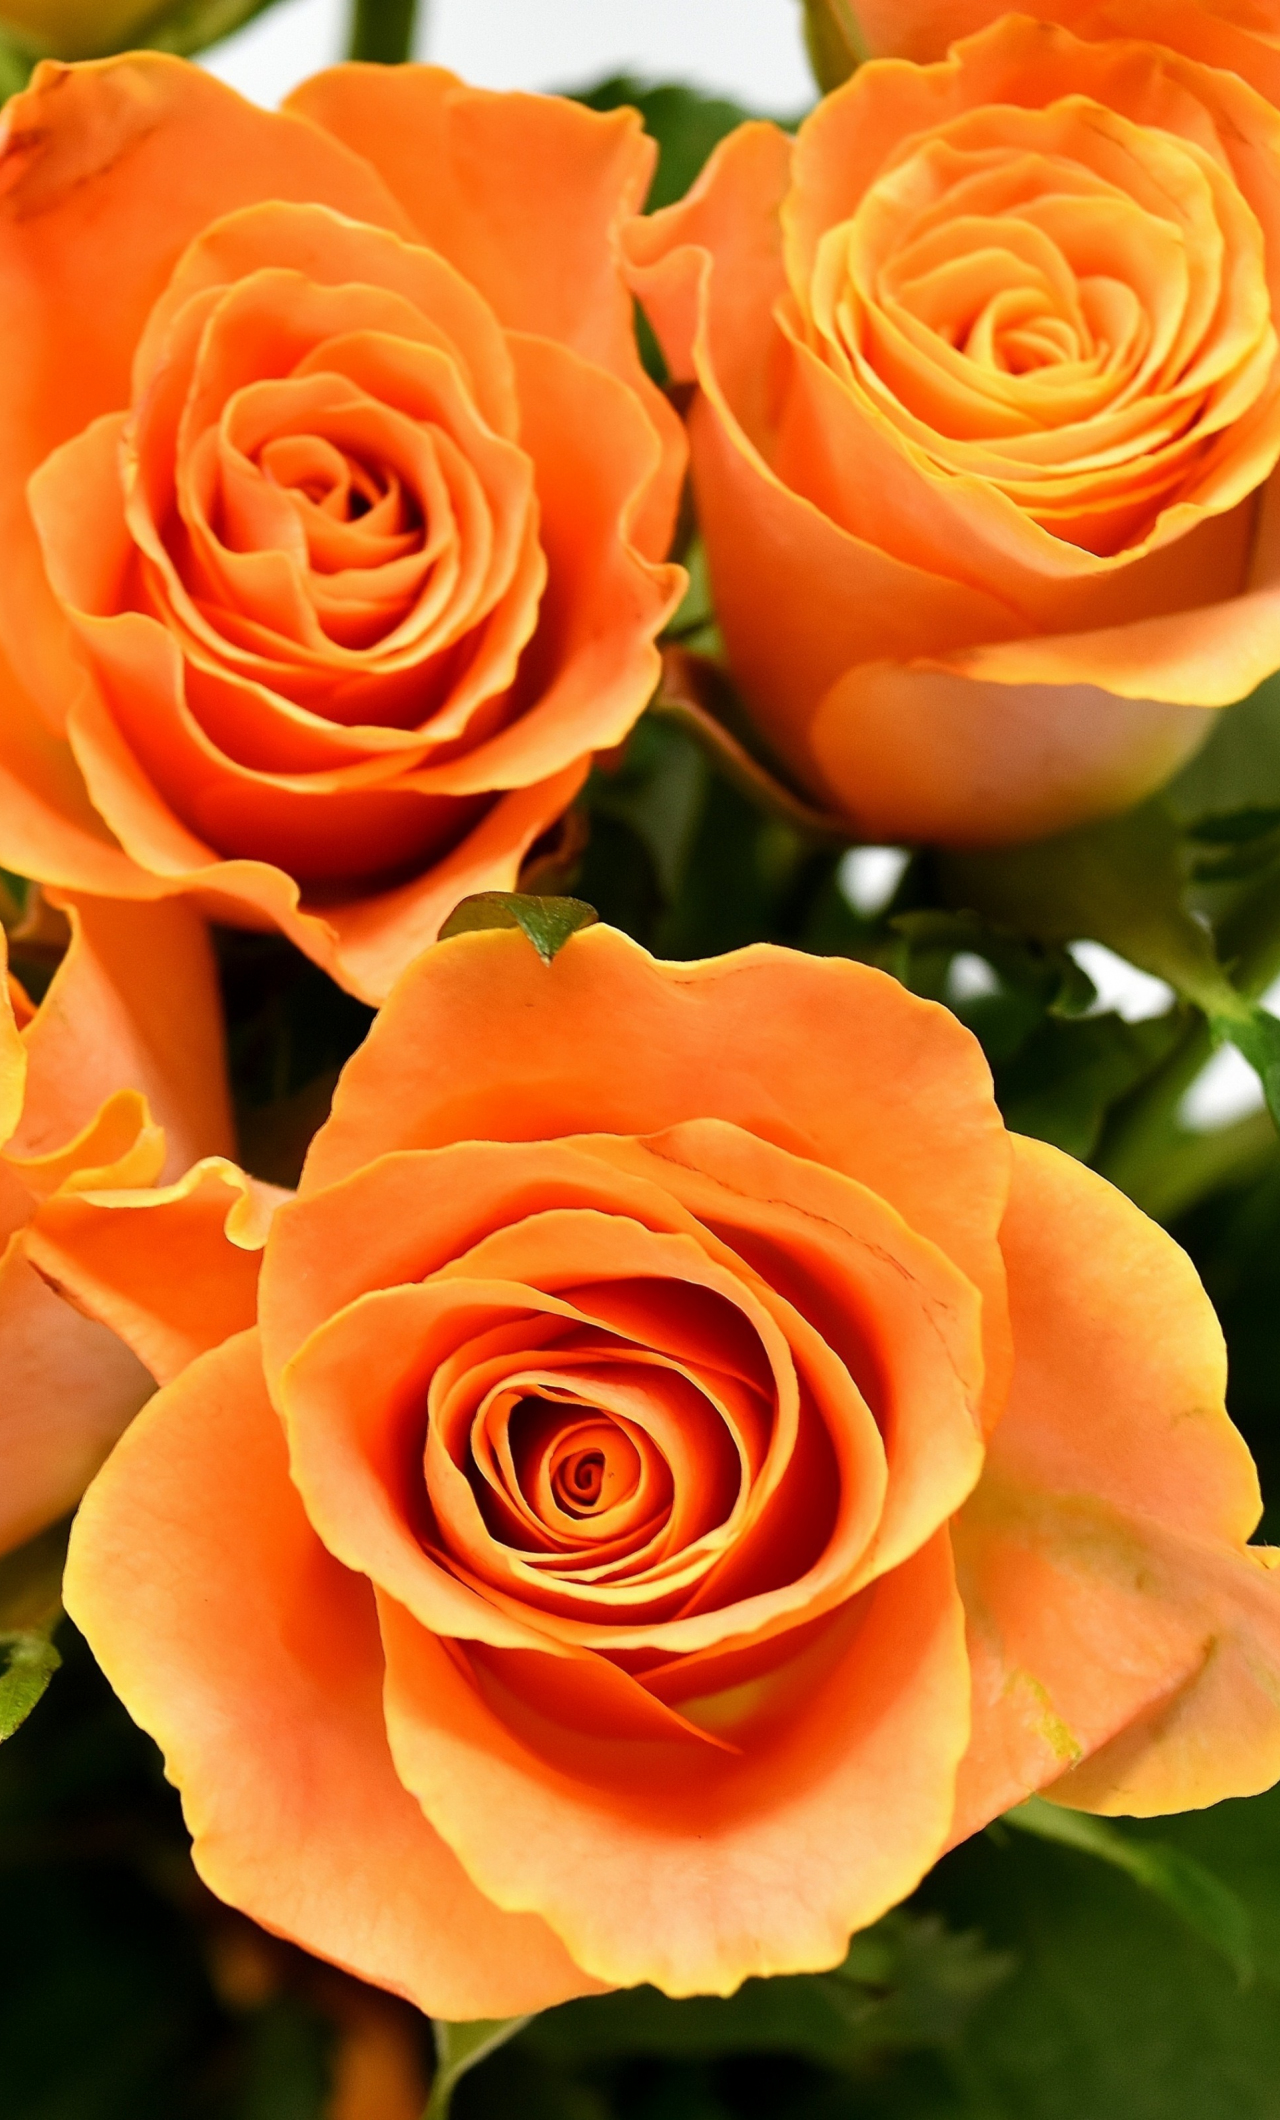 Download 1280x2120 Wallpaper Orange Roses Flowers Bouquet Iphone 6 Plus 1280x2120 Hd Image Background 3028